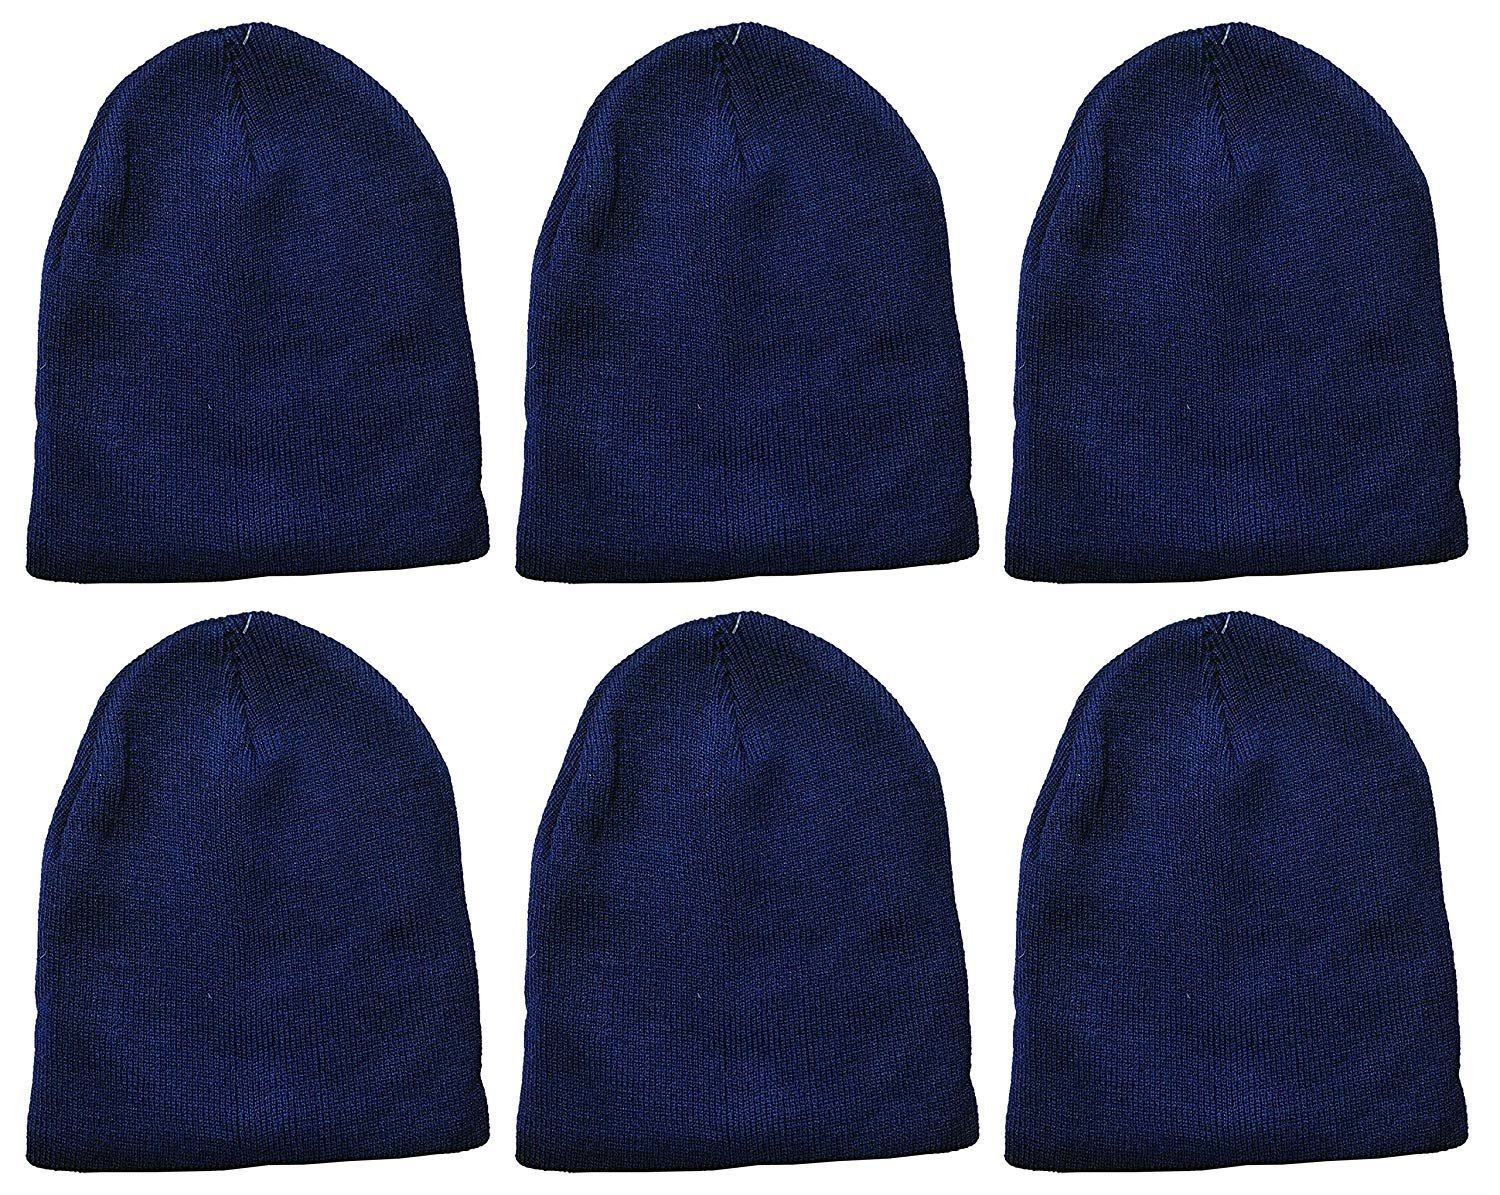 Wholesale Bulk Cold Weather Warm Knit Skull Caps Mens Womens Unisex Hats 48 Pack Winter Beanies